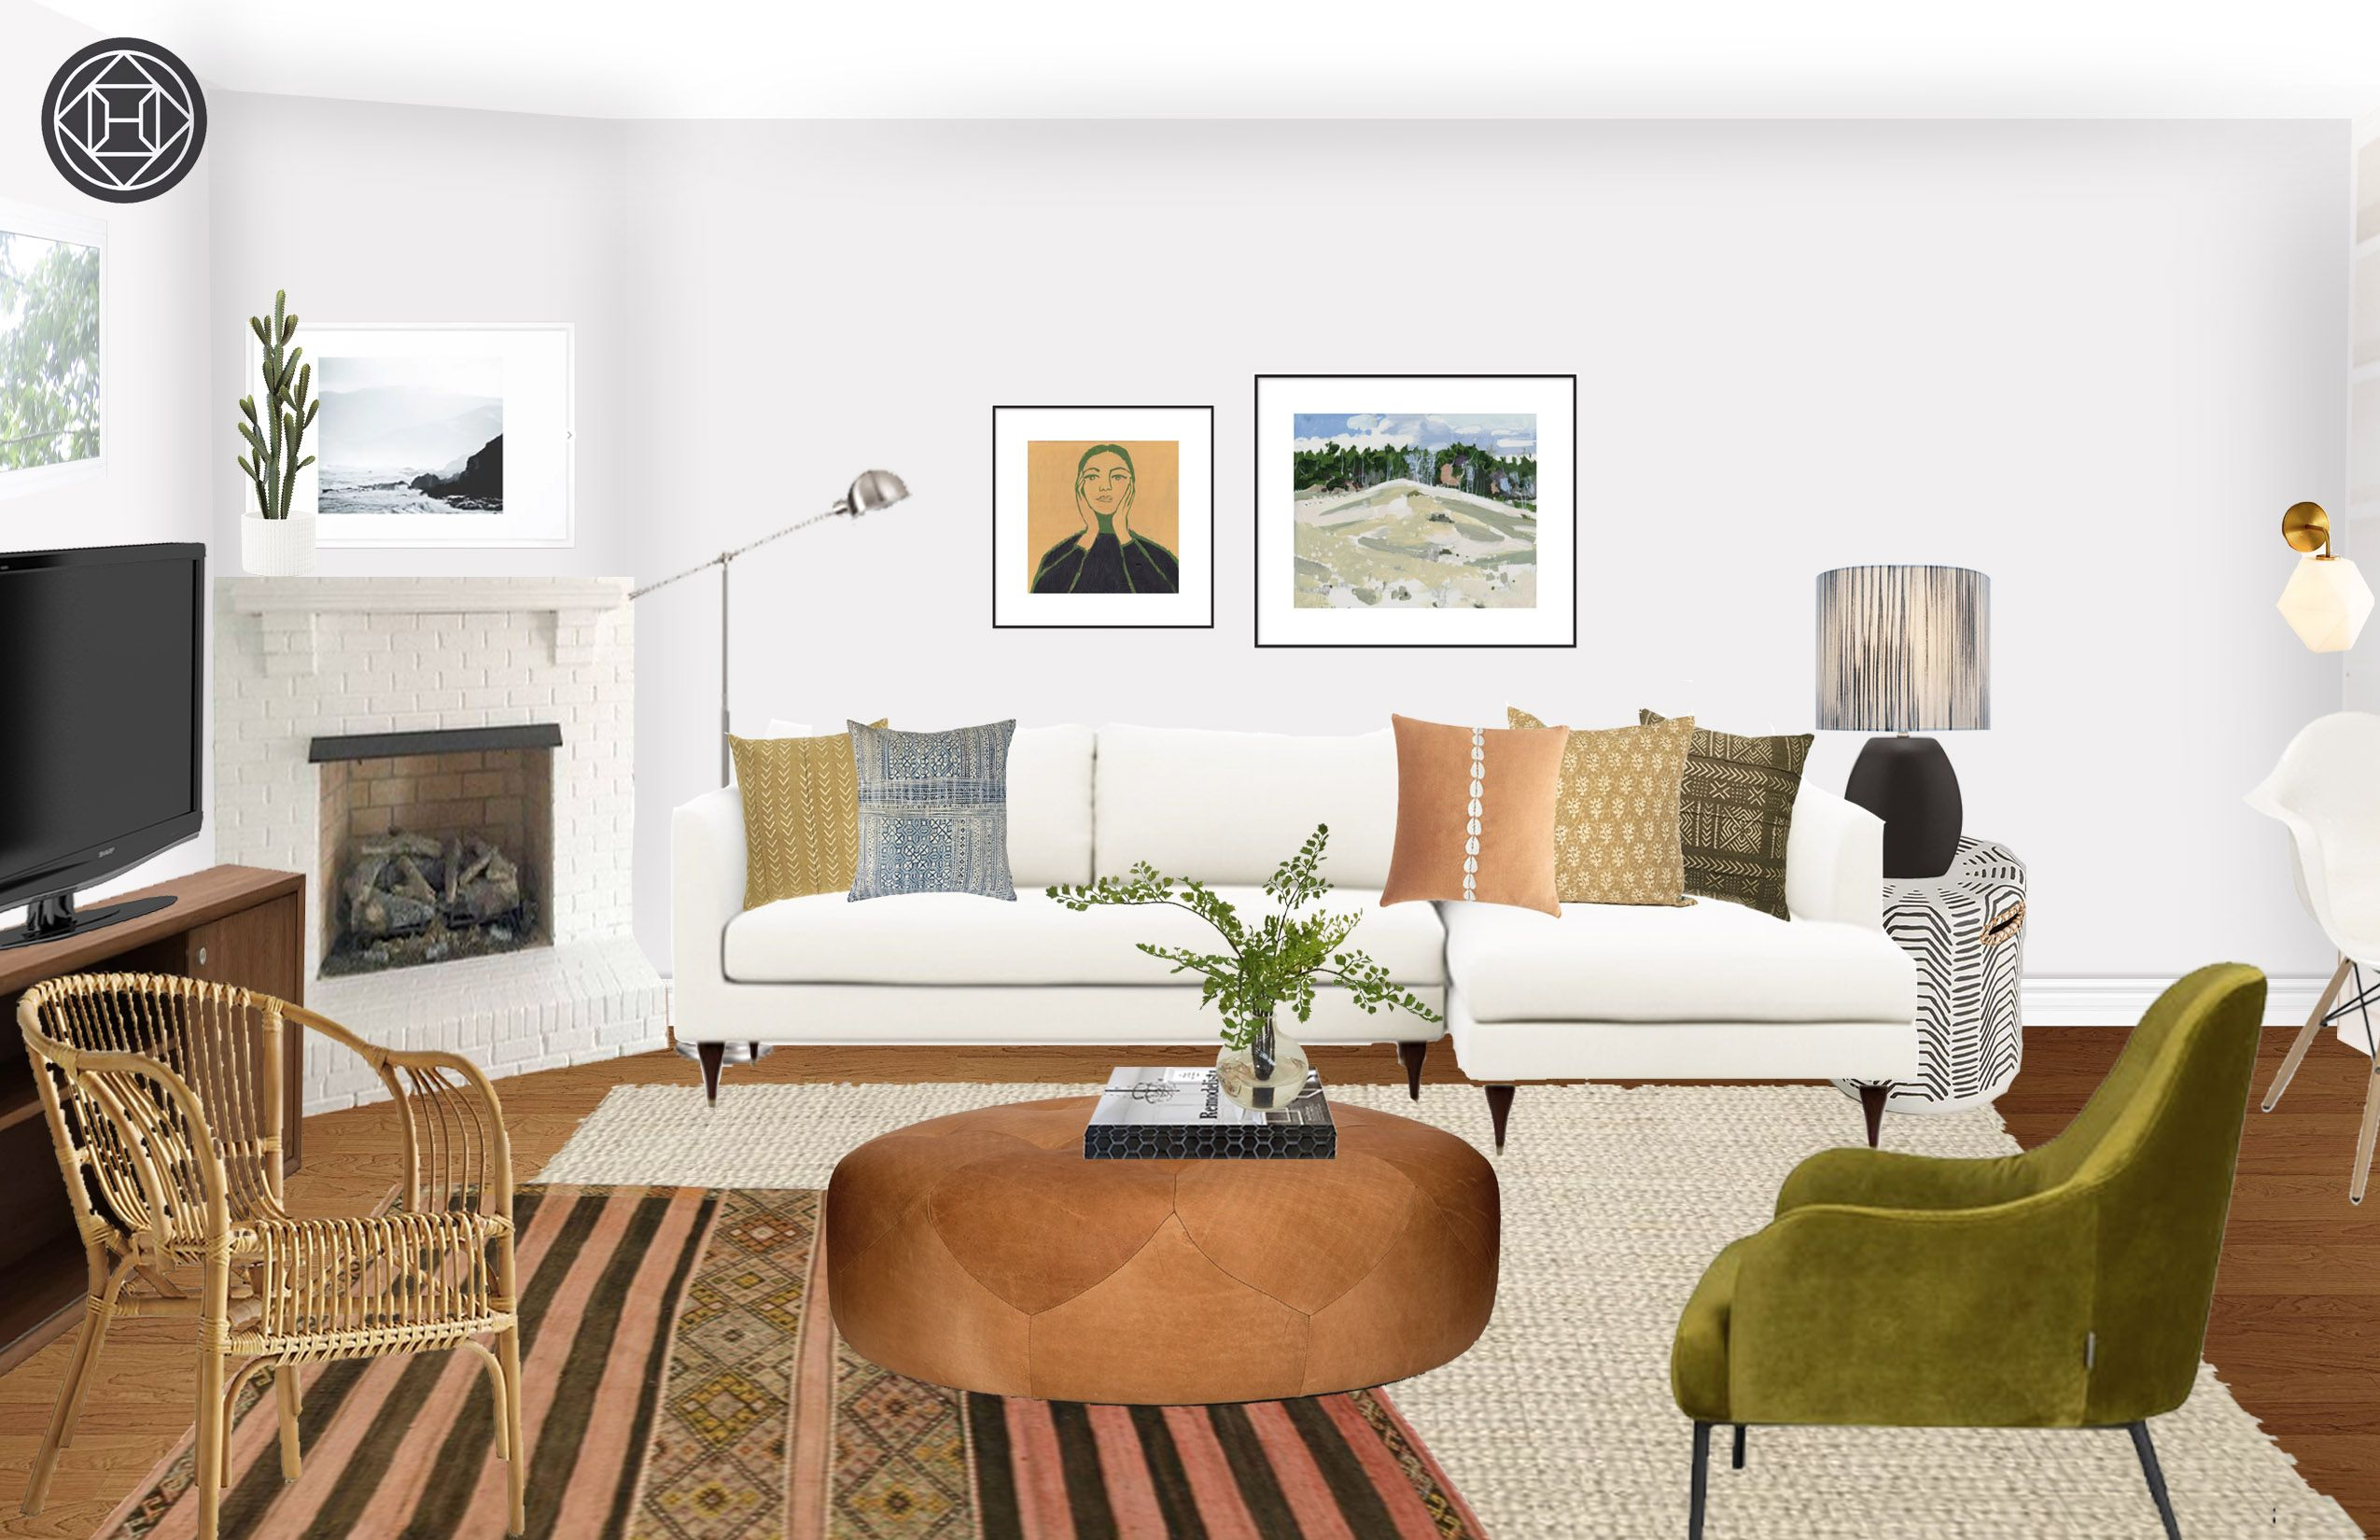 Eclectic Bohemian Global Living Room Design By Havenly Inte